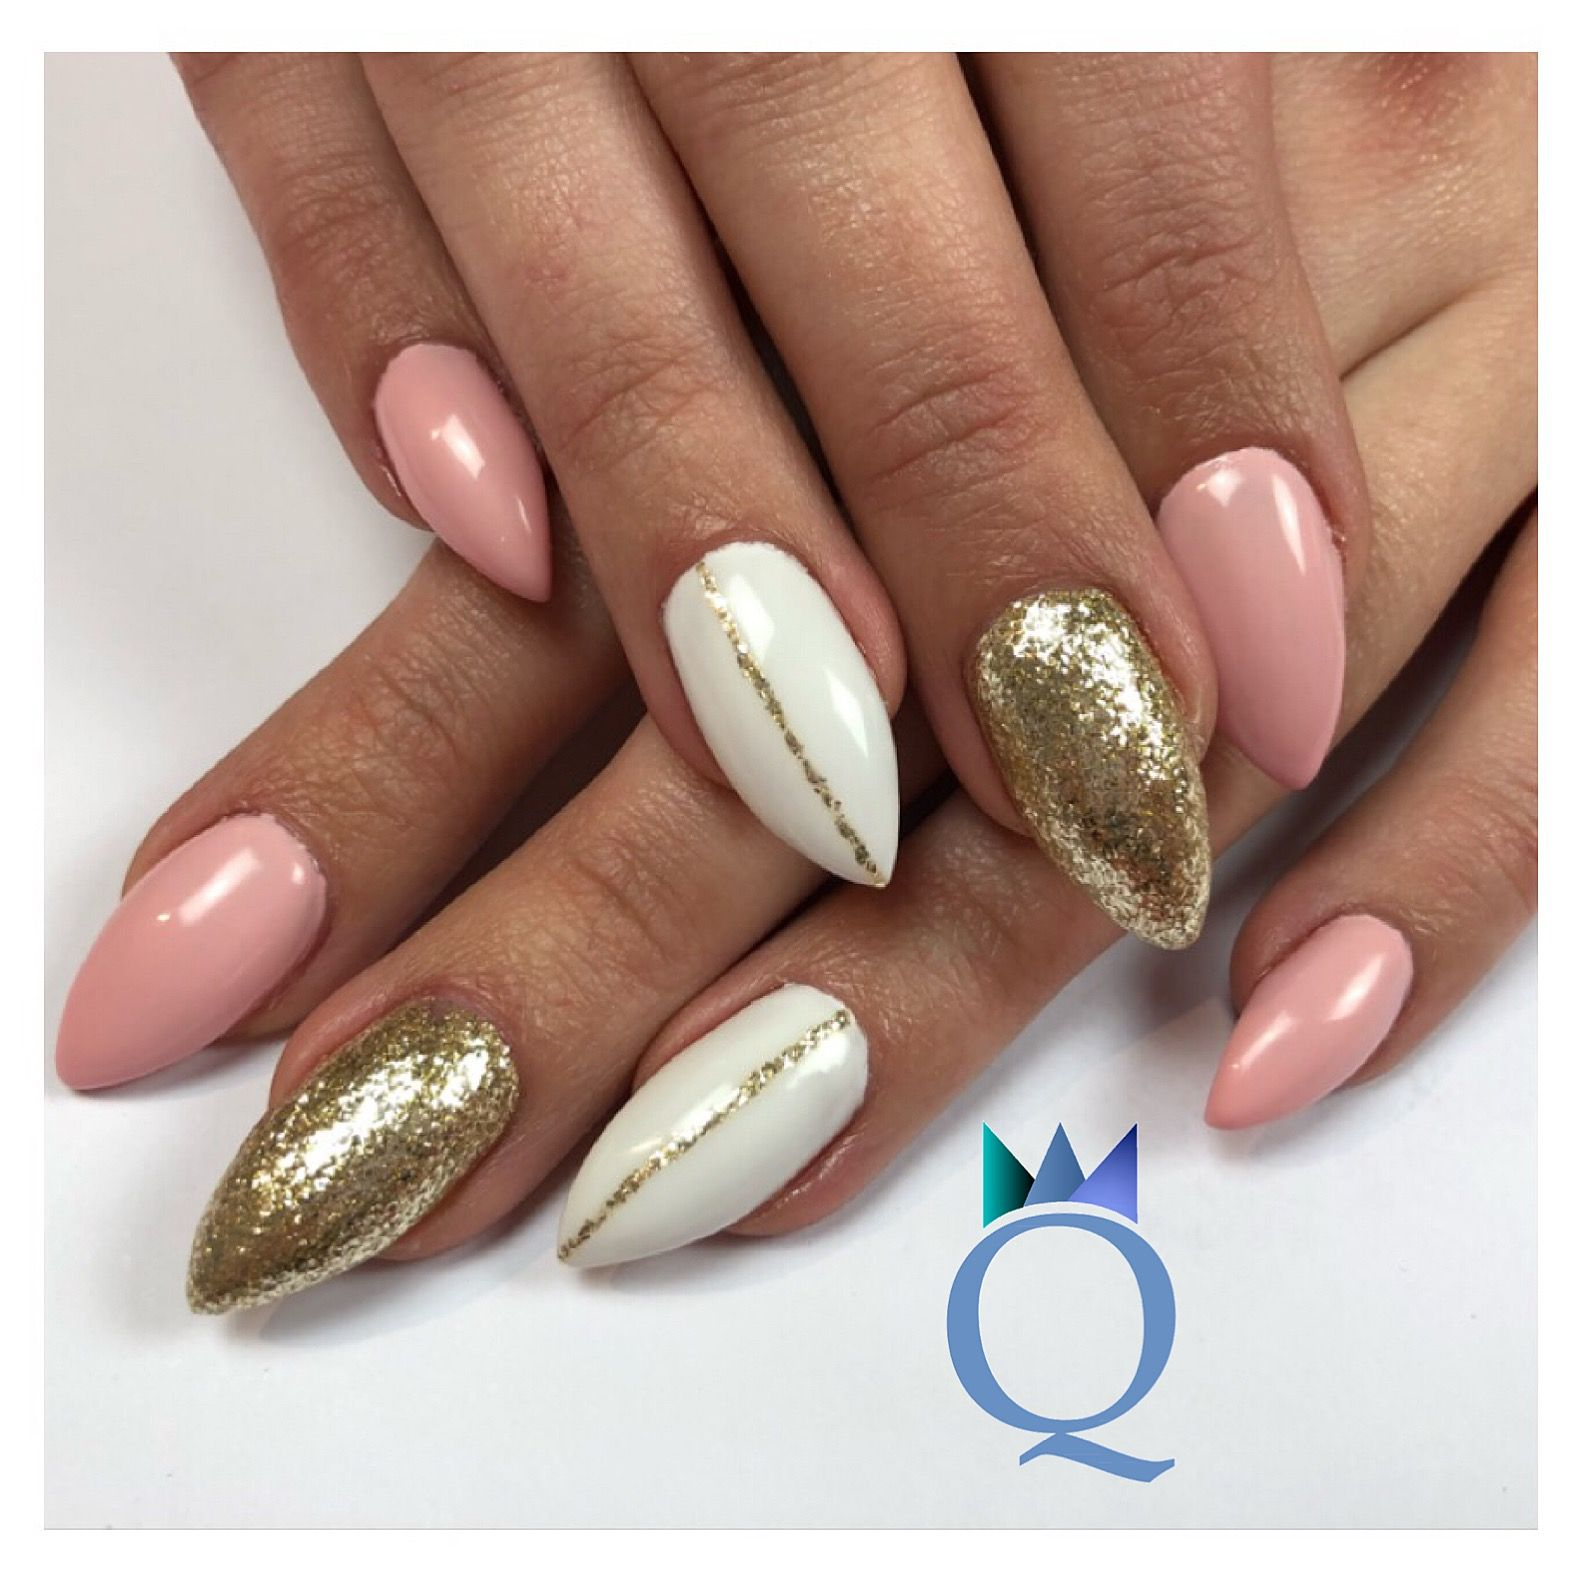 Nageldesign Weiß Rosa Stilettonails Gelnails Nails Pink White Gold Stilettos